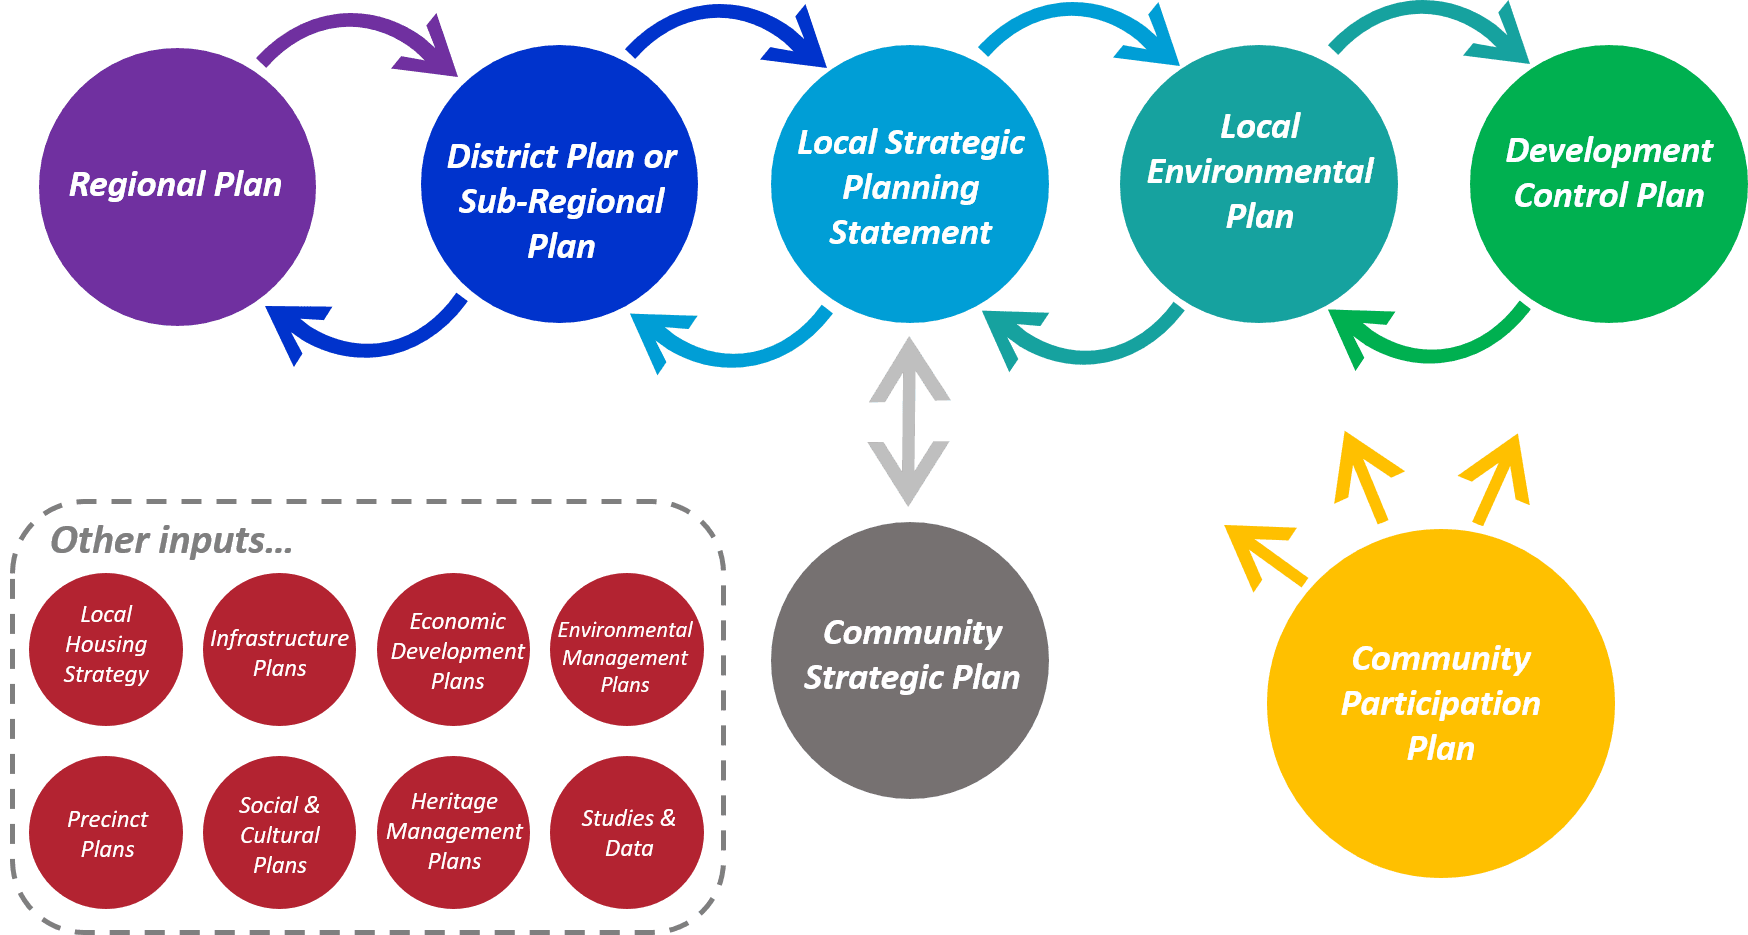 Community Participation Plan